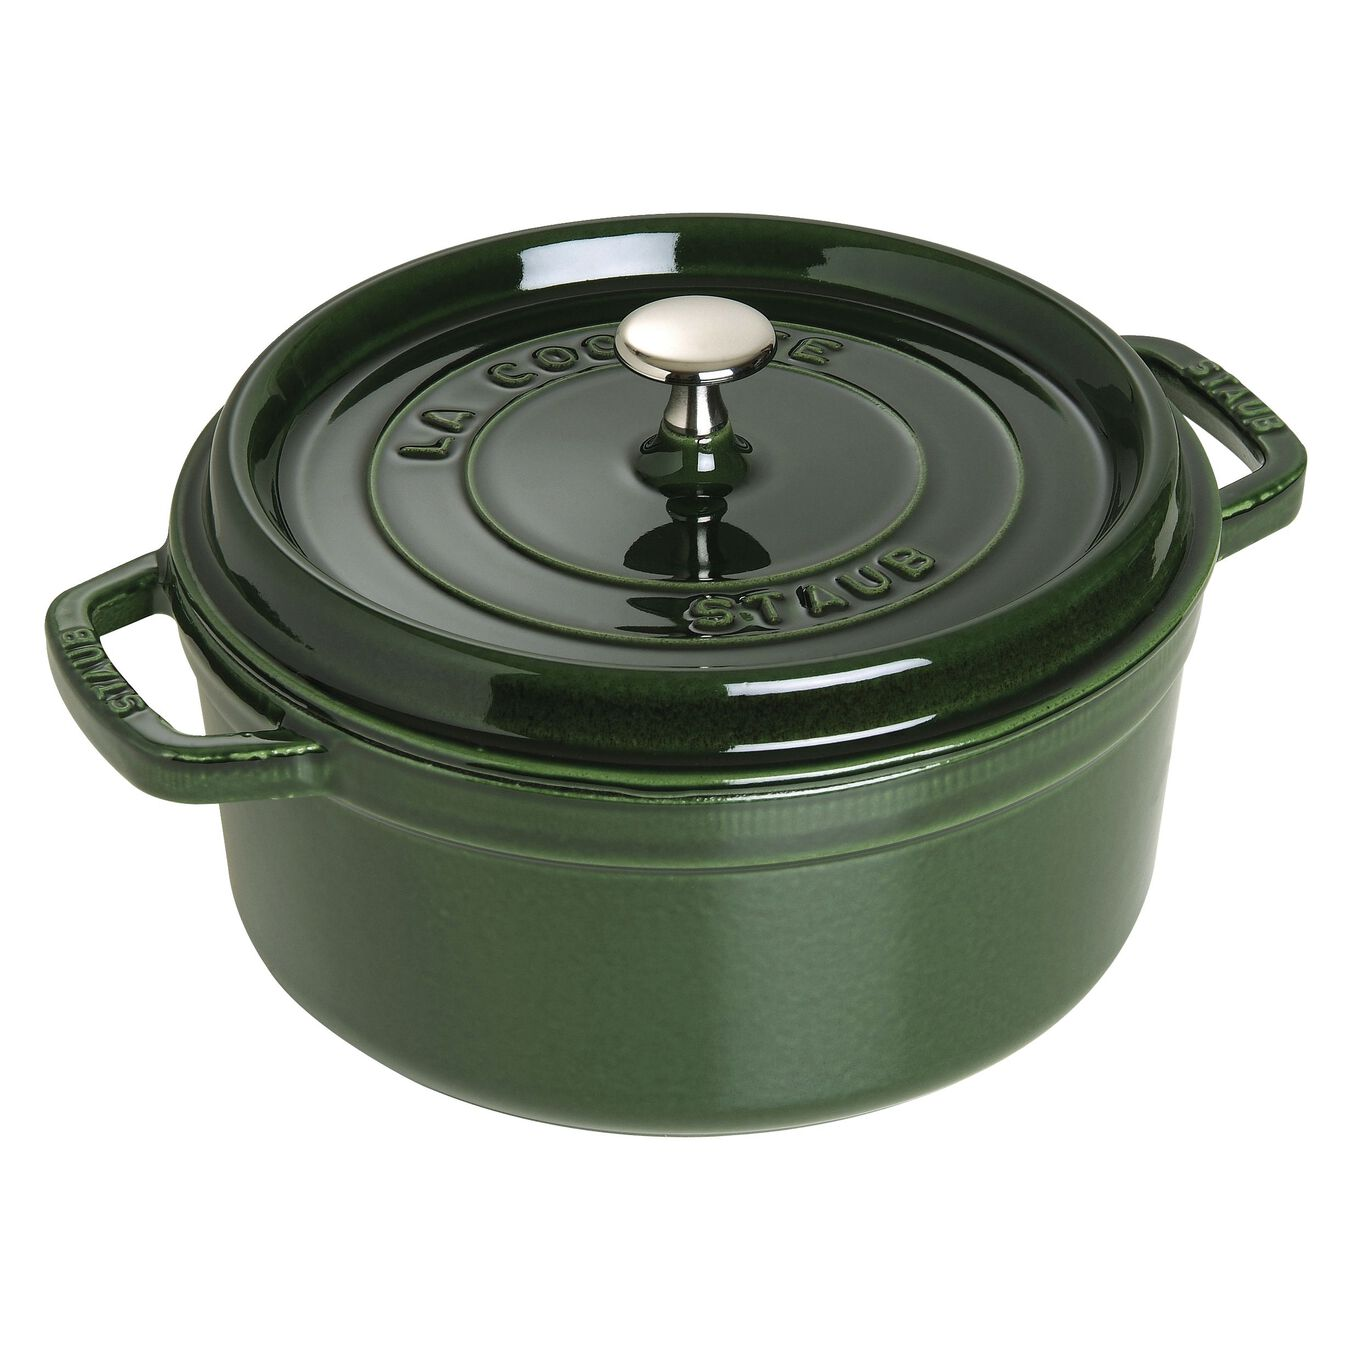 3.75 l Cast iron round Cocotte, Basil-Green,,large 1